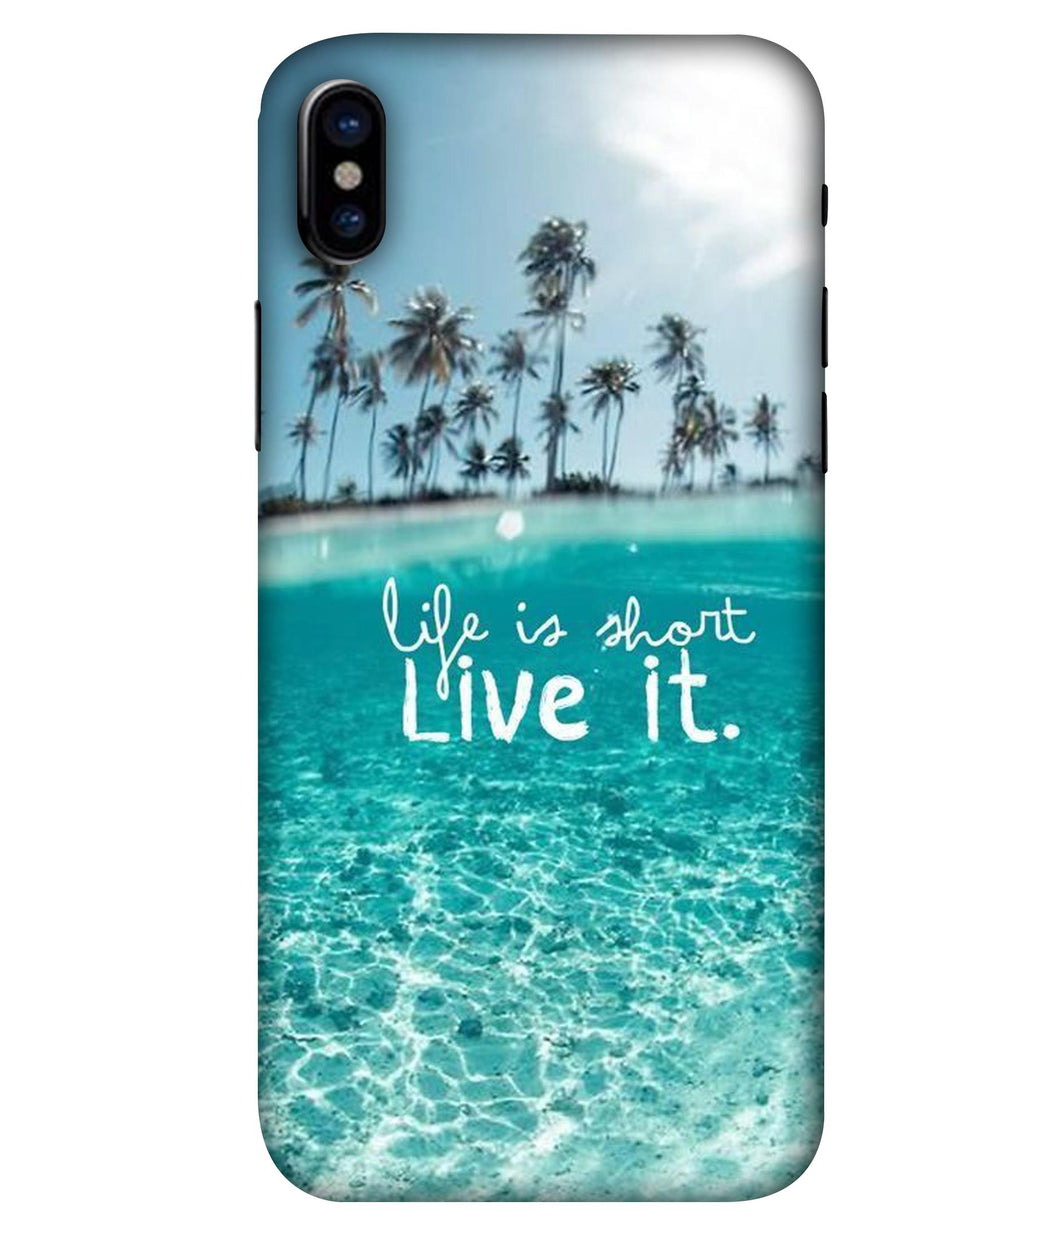 Apple Iphone X Live Life Mobile cover